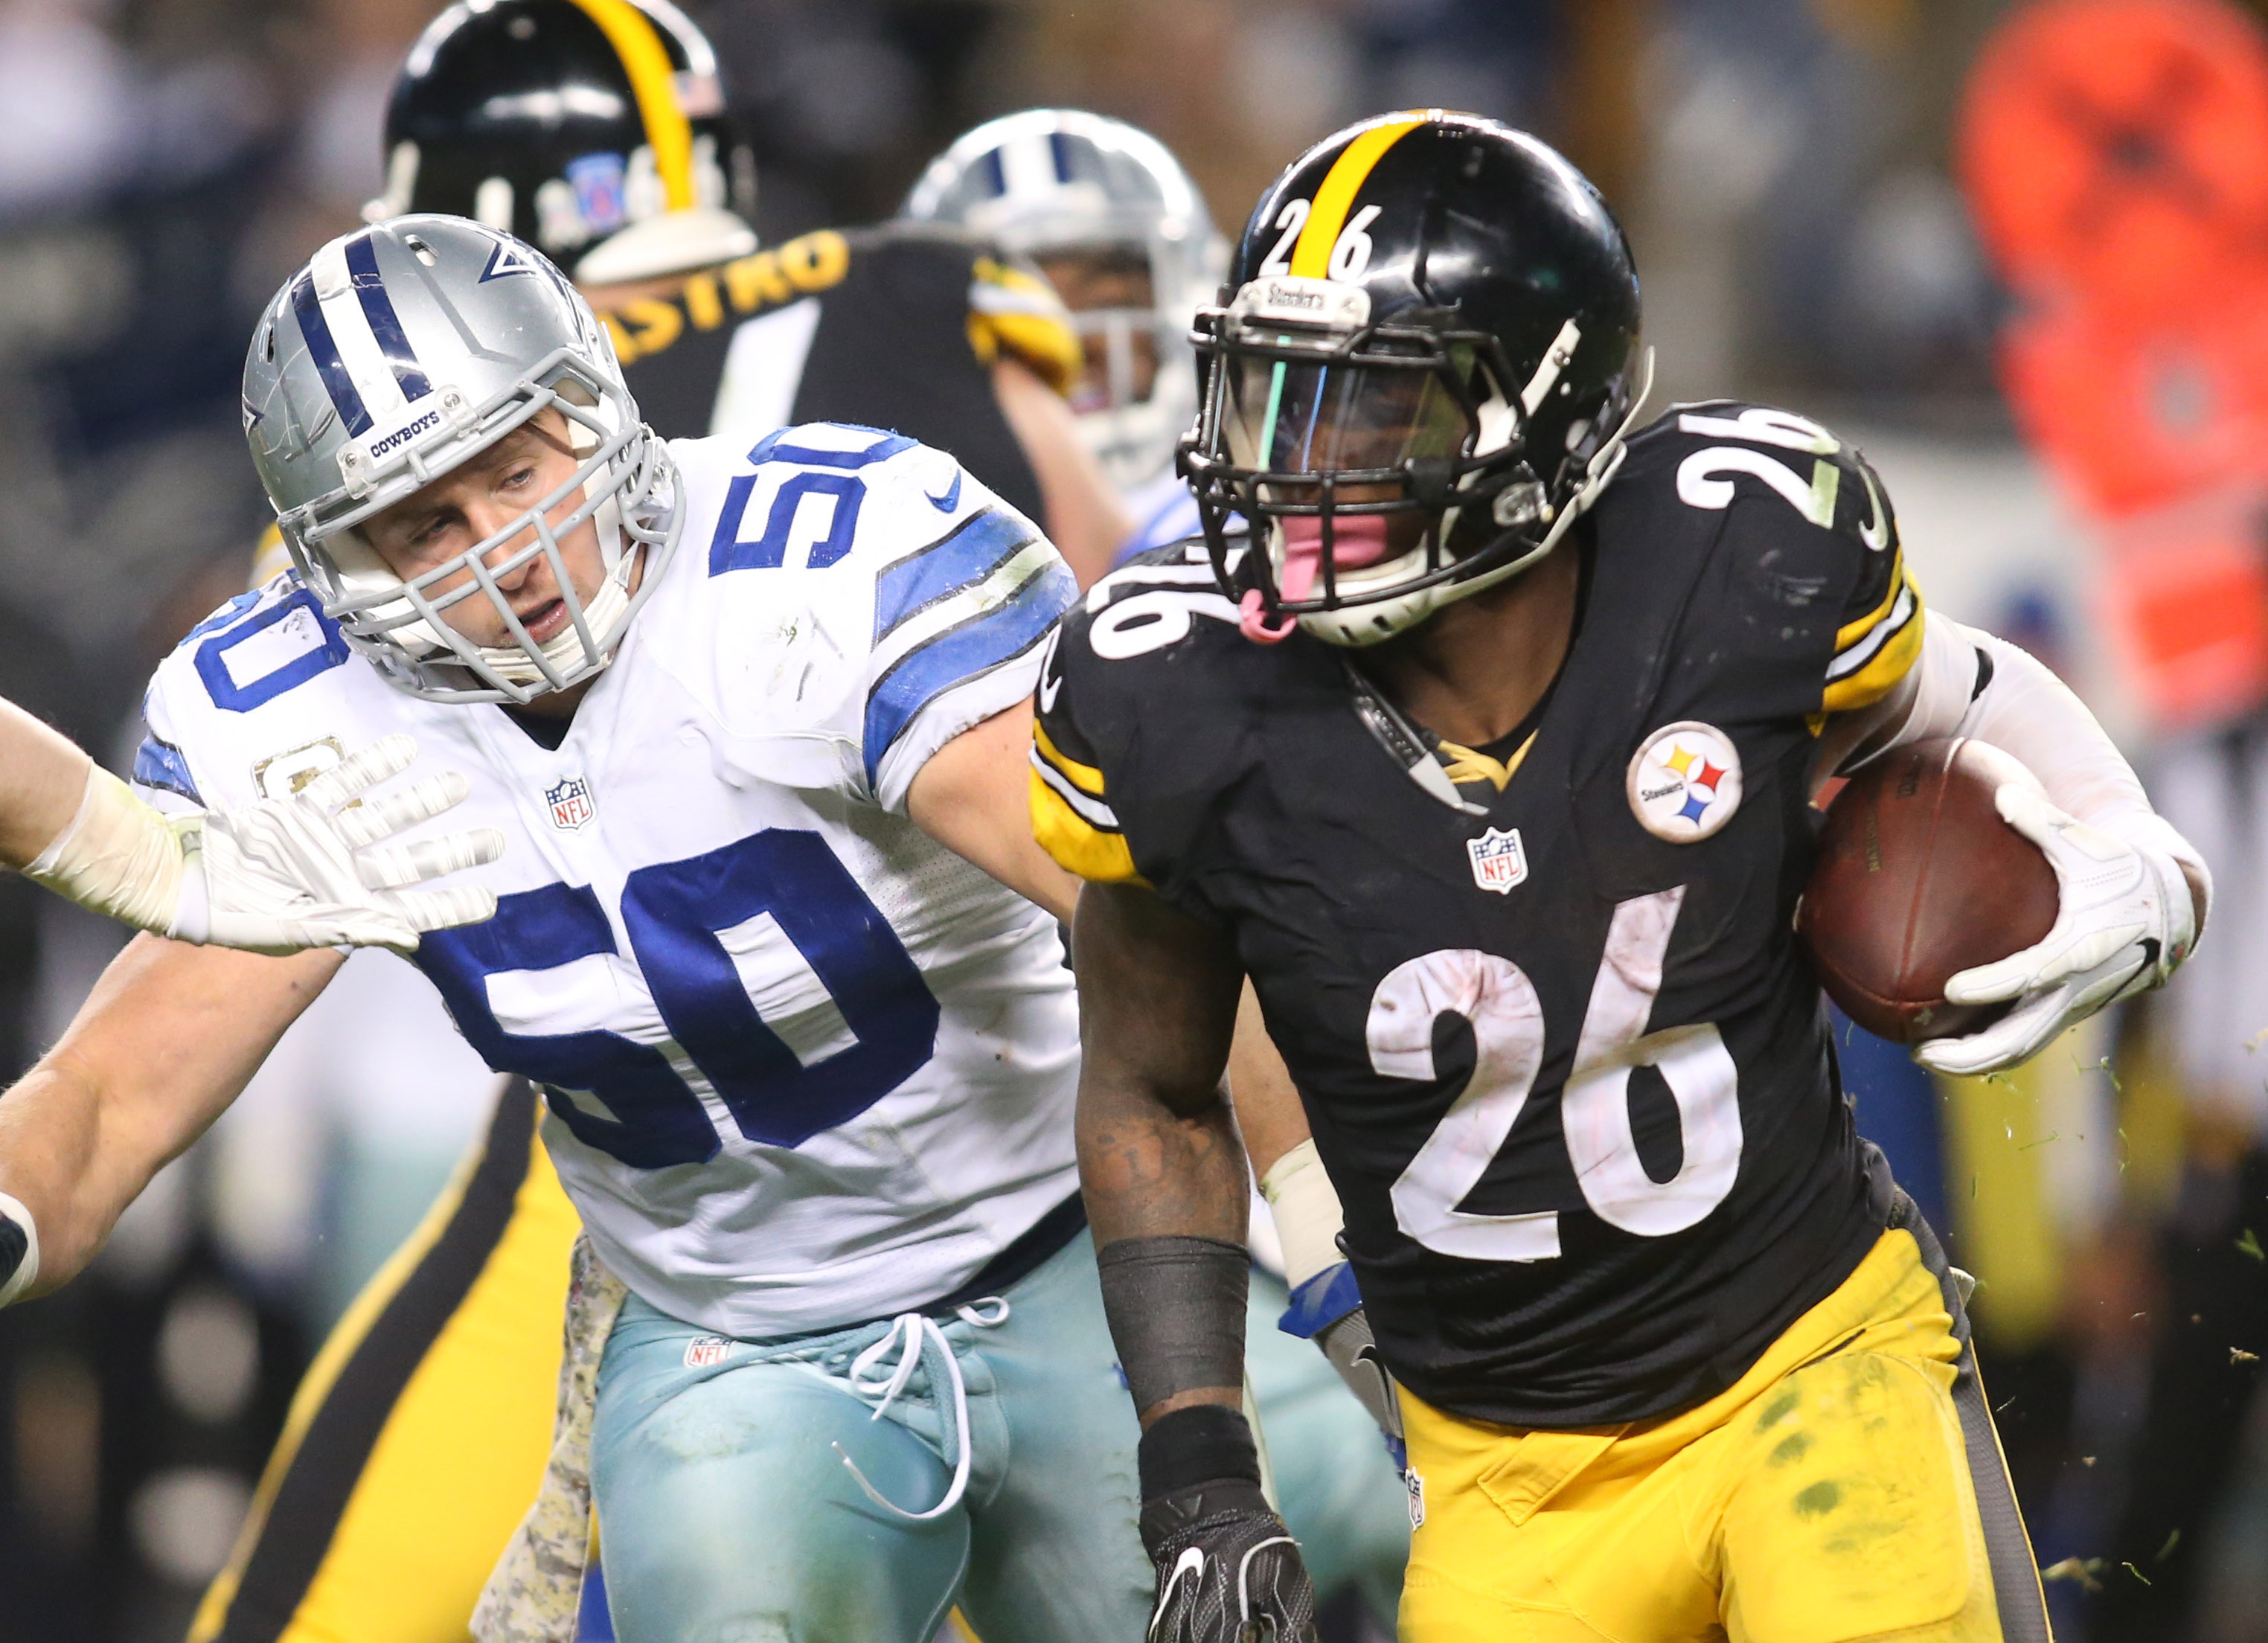 9675731-nfl-dallas-cowboys-at-pittsburgh-steelers